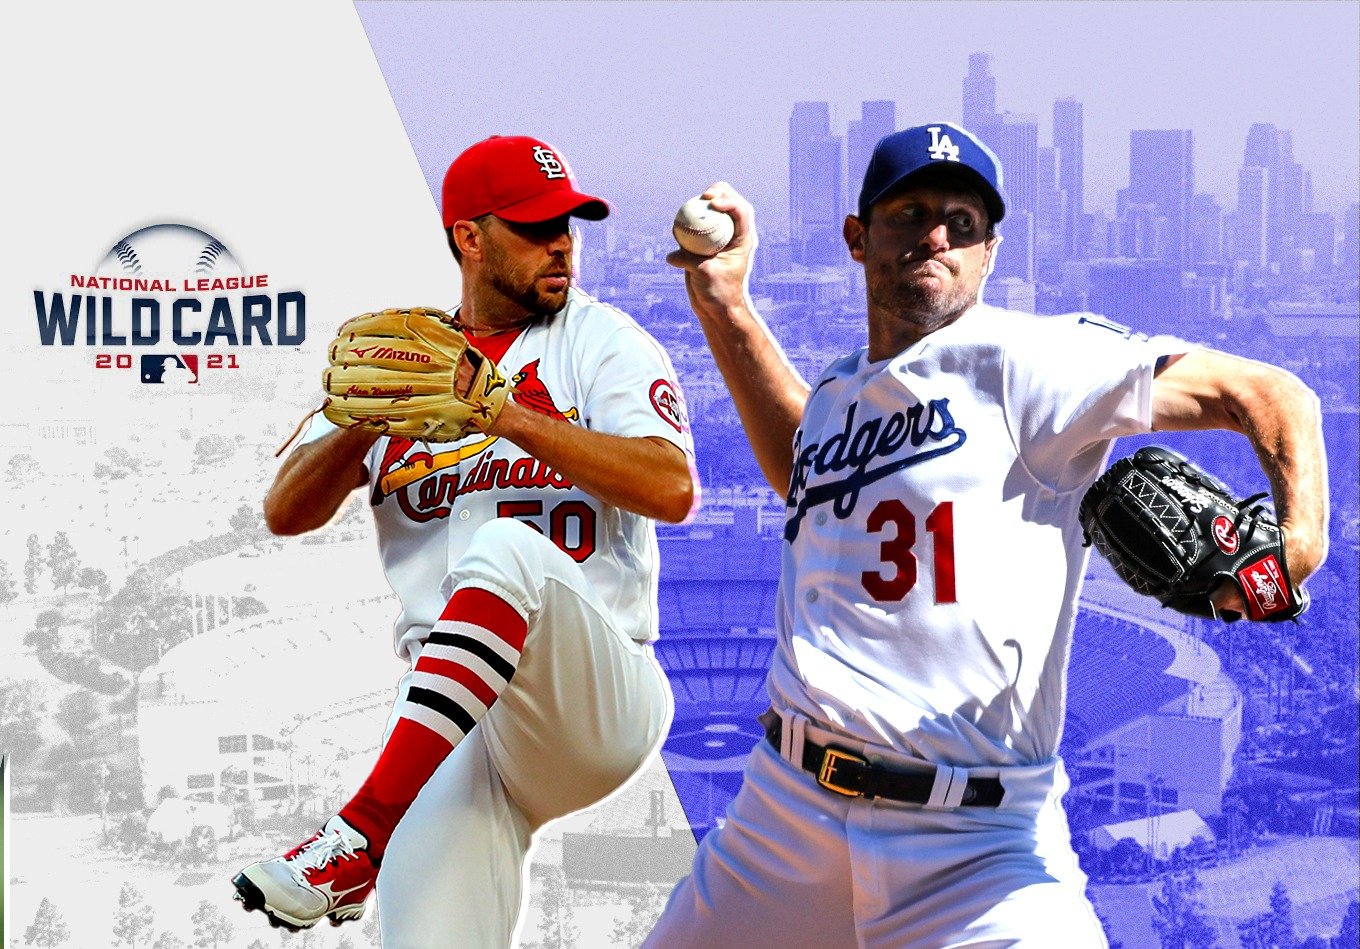 Mad Max vs. Waino: Keys to Watch in the NL Wild-Card Pitching Matchup at Chavez Ravine